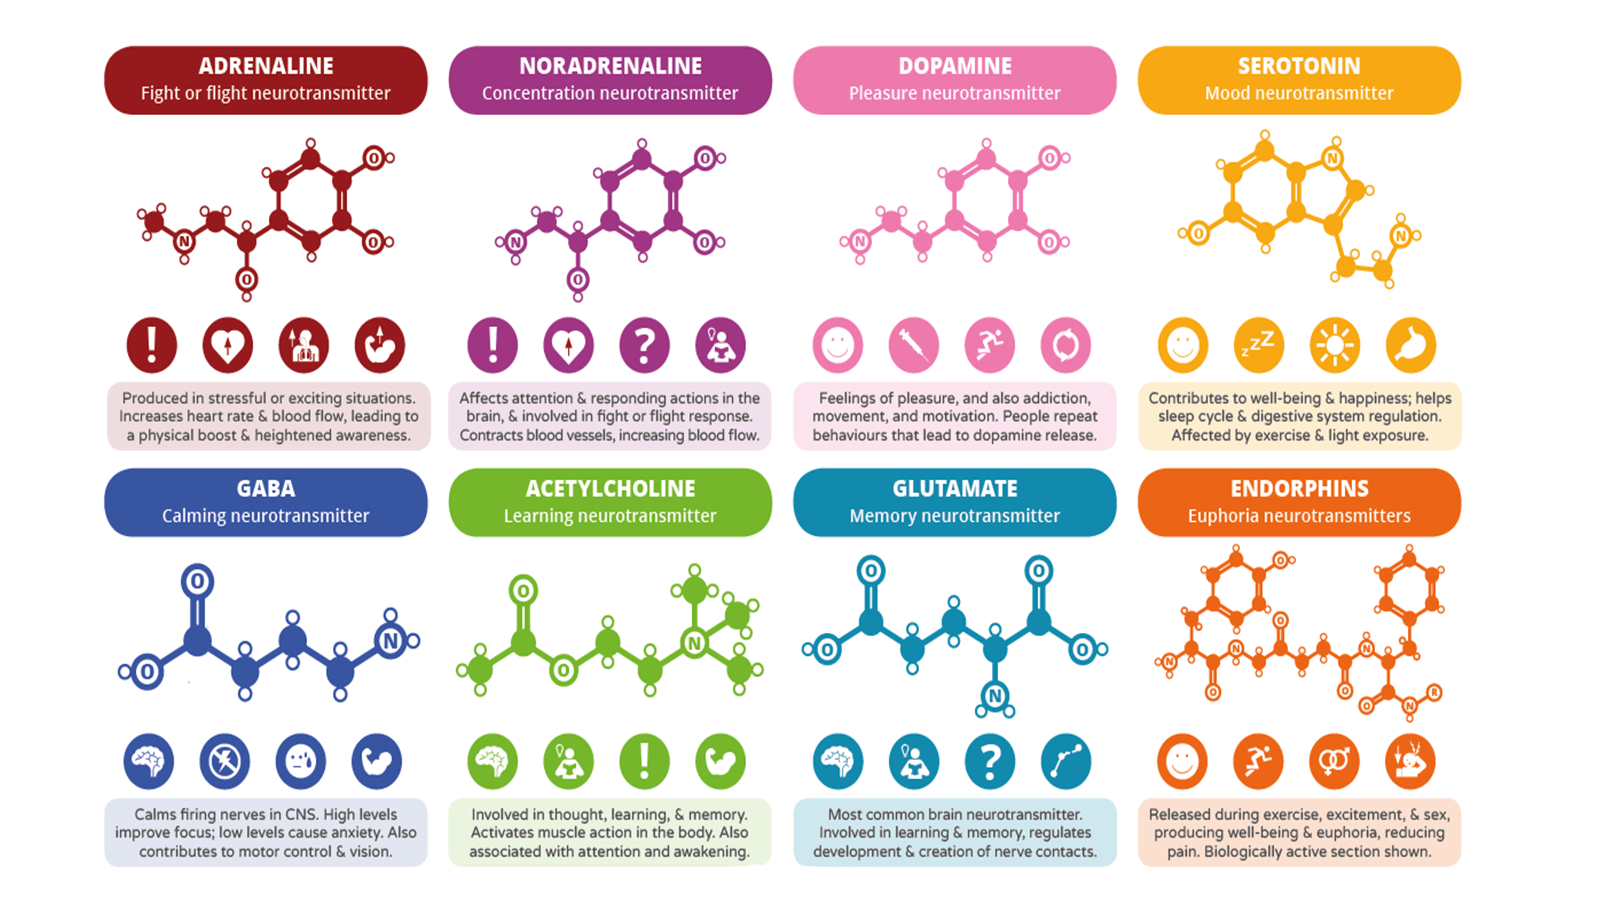 Physiology CNS neurotransmitters